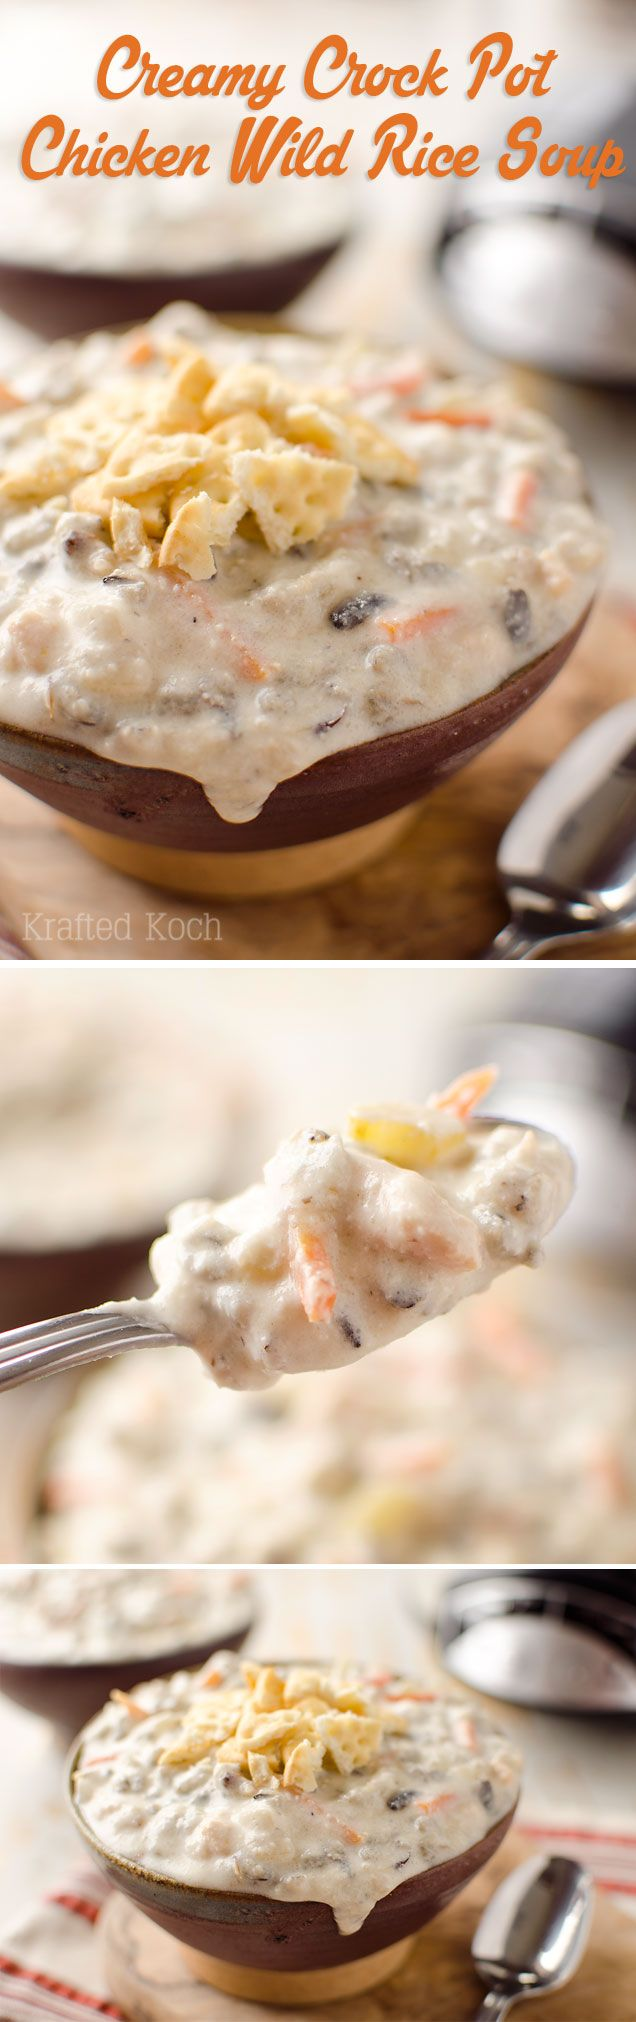 Creamy Crock Pot Chicken Wild Rice Soup - Krafted Koch - A creamy and decadent soup recipe you can throw in your slow cooker. NO canned soup.